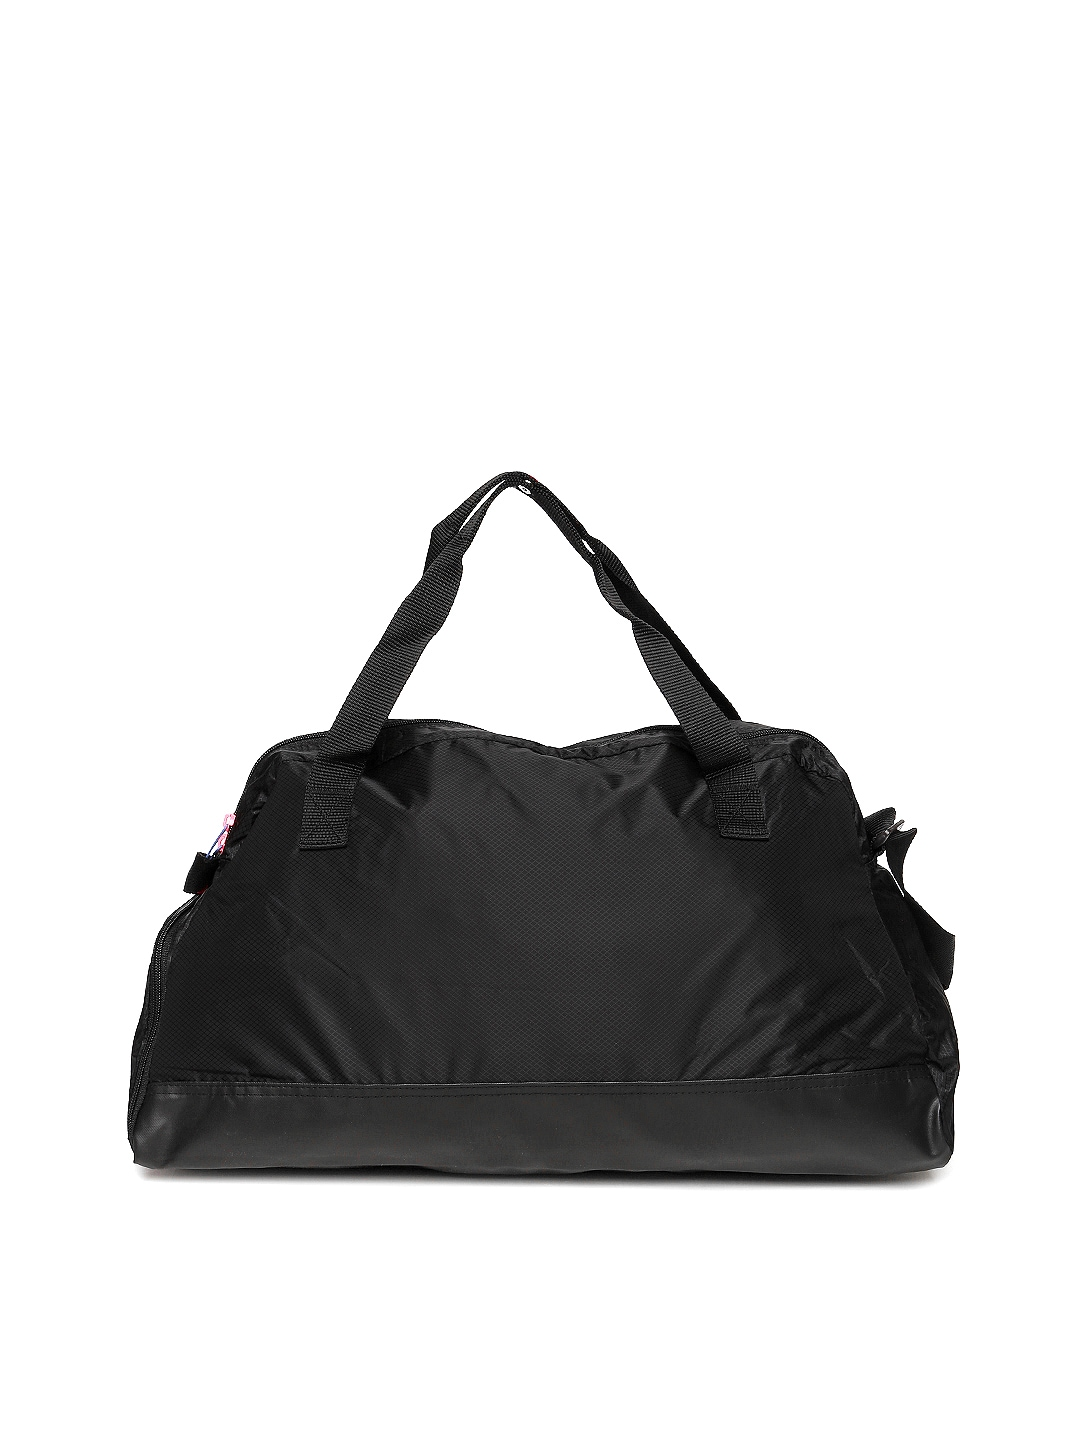 Popular The Womens Fit Active Training Large Sports Bag From Puma Is A